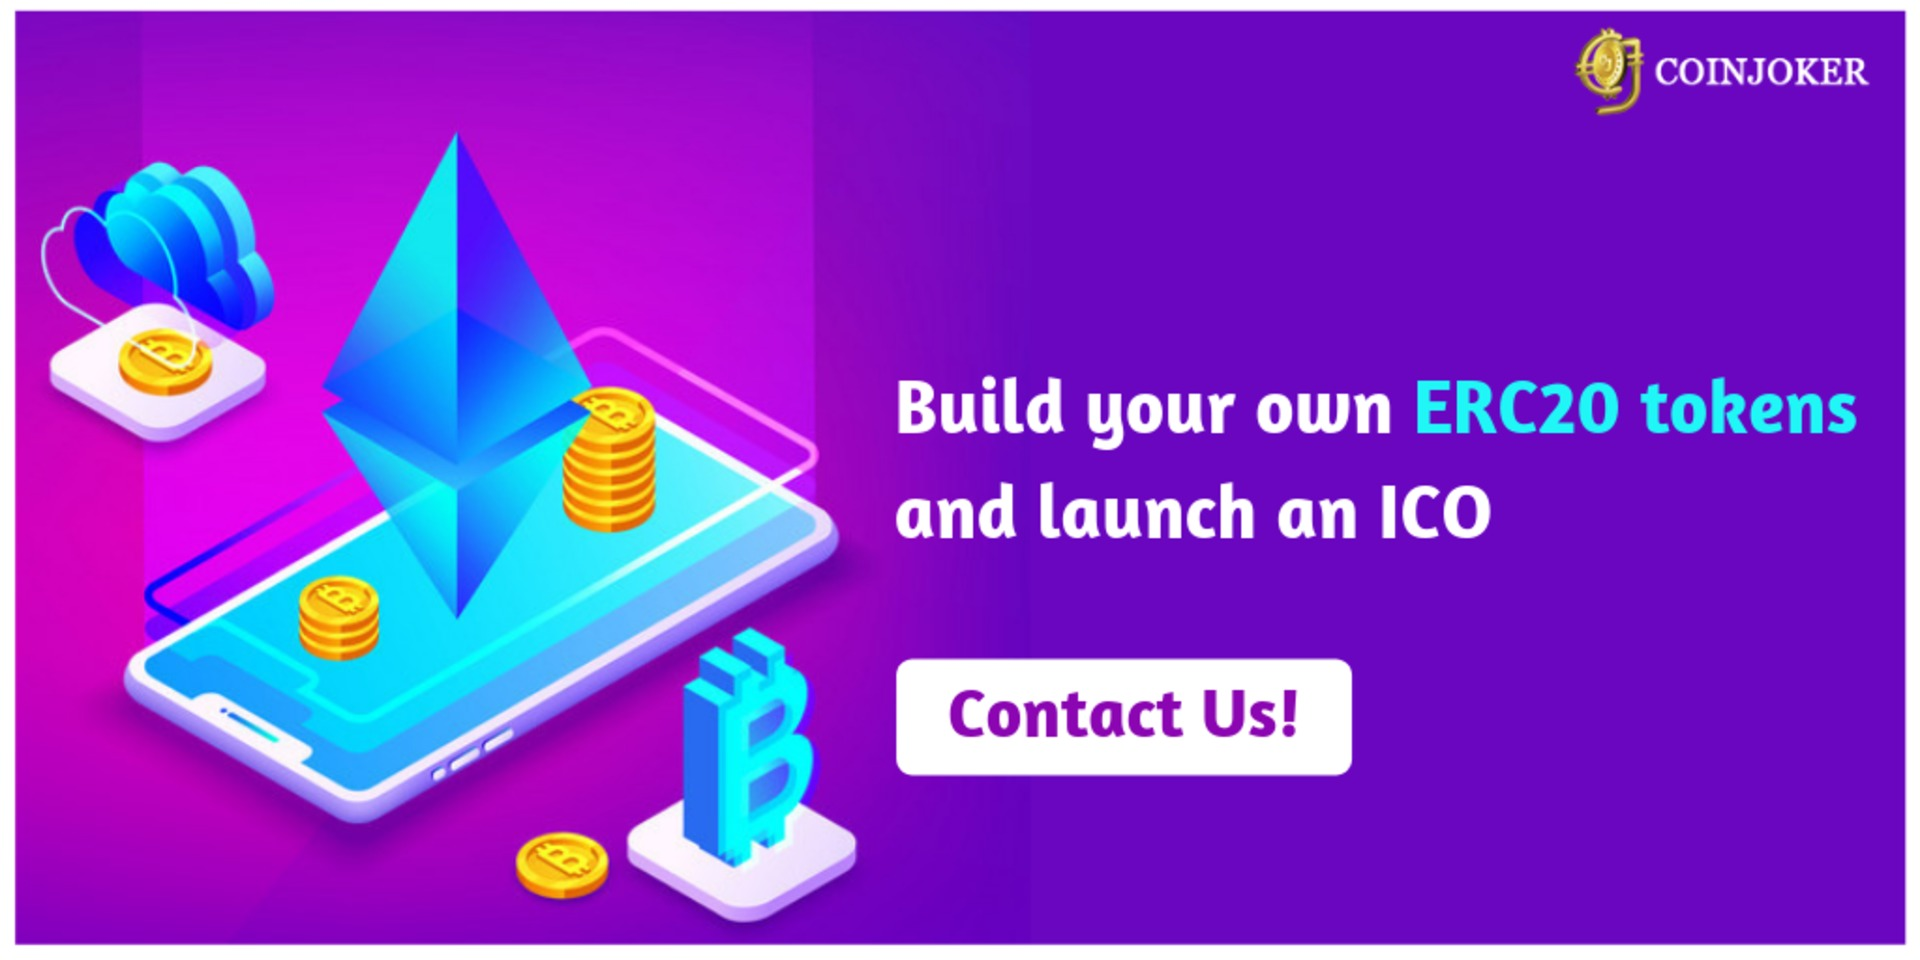 Build your own ERC20 tokens and launch an ICO image